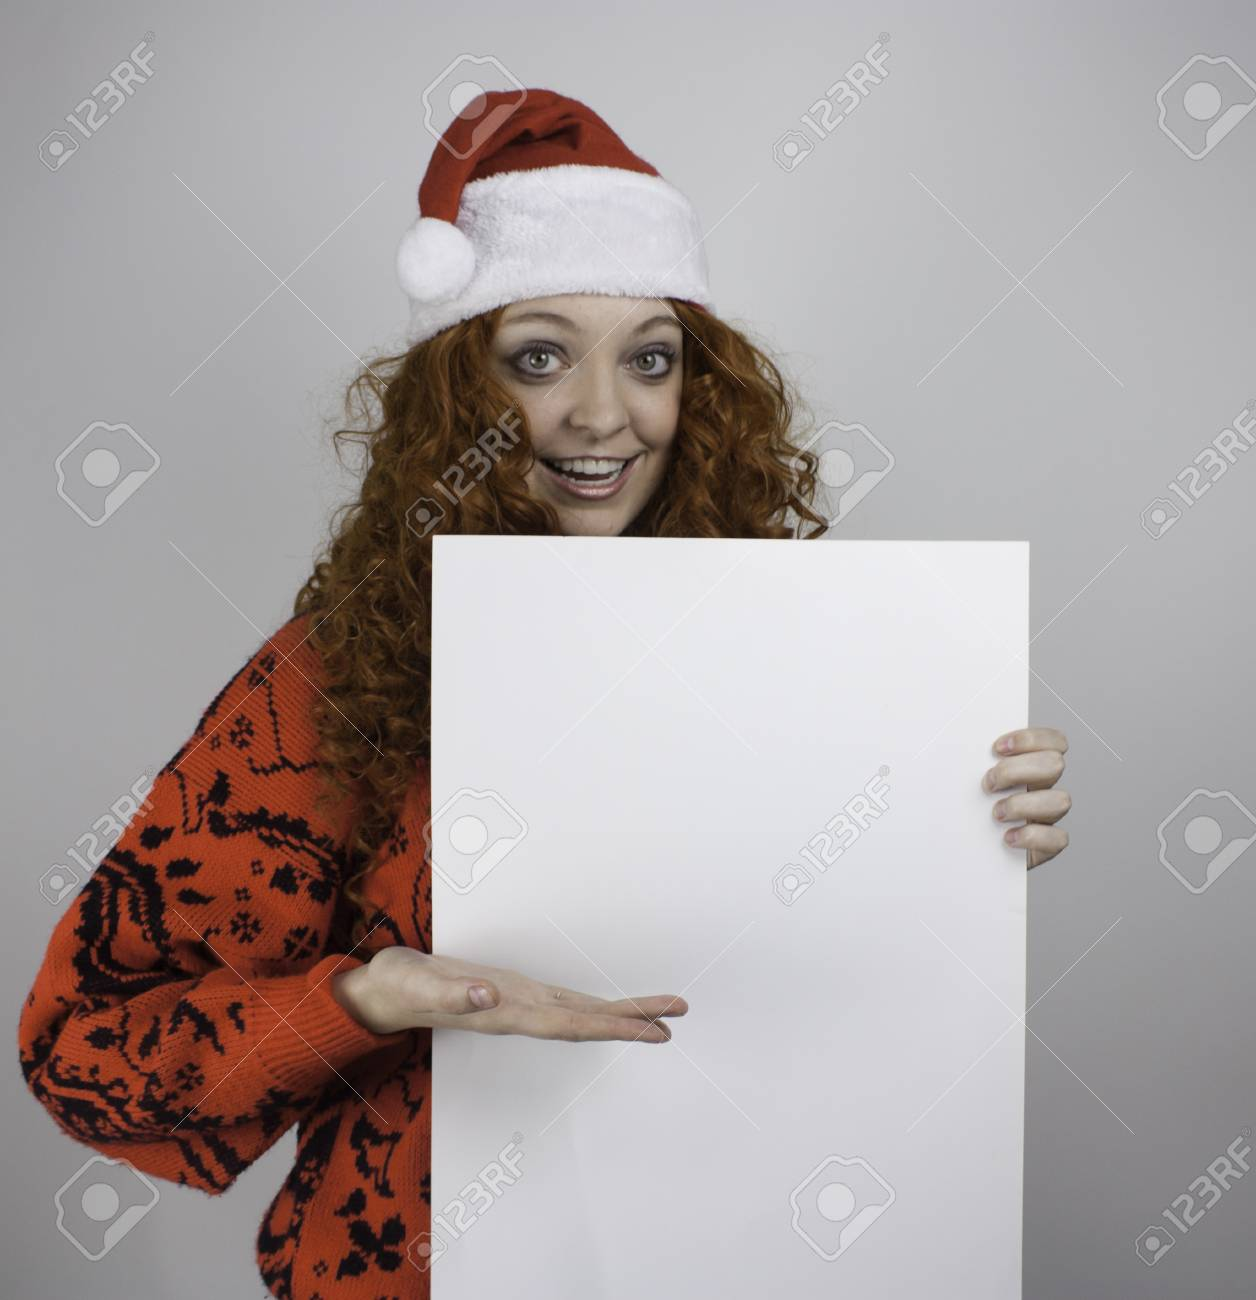 2cc304d5ac7a6 Pretty young woman wearing Santa hat and holding blank sign Stock Photo -  25783577